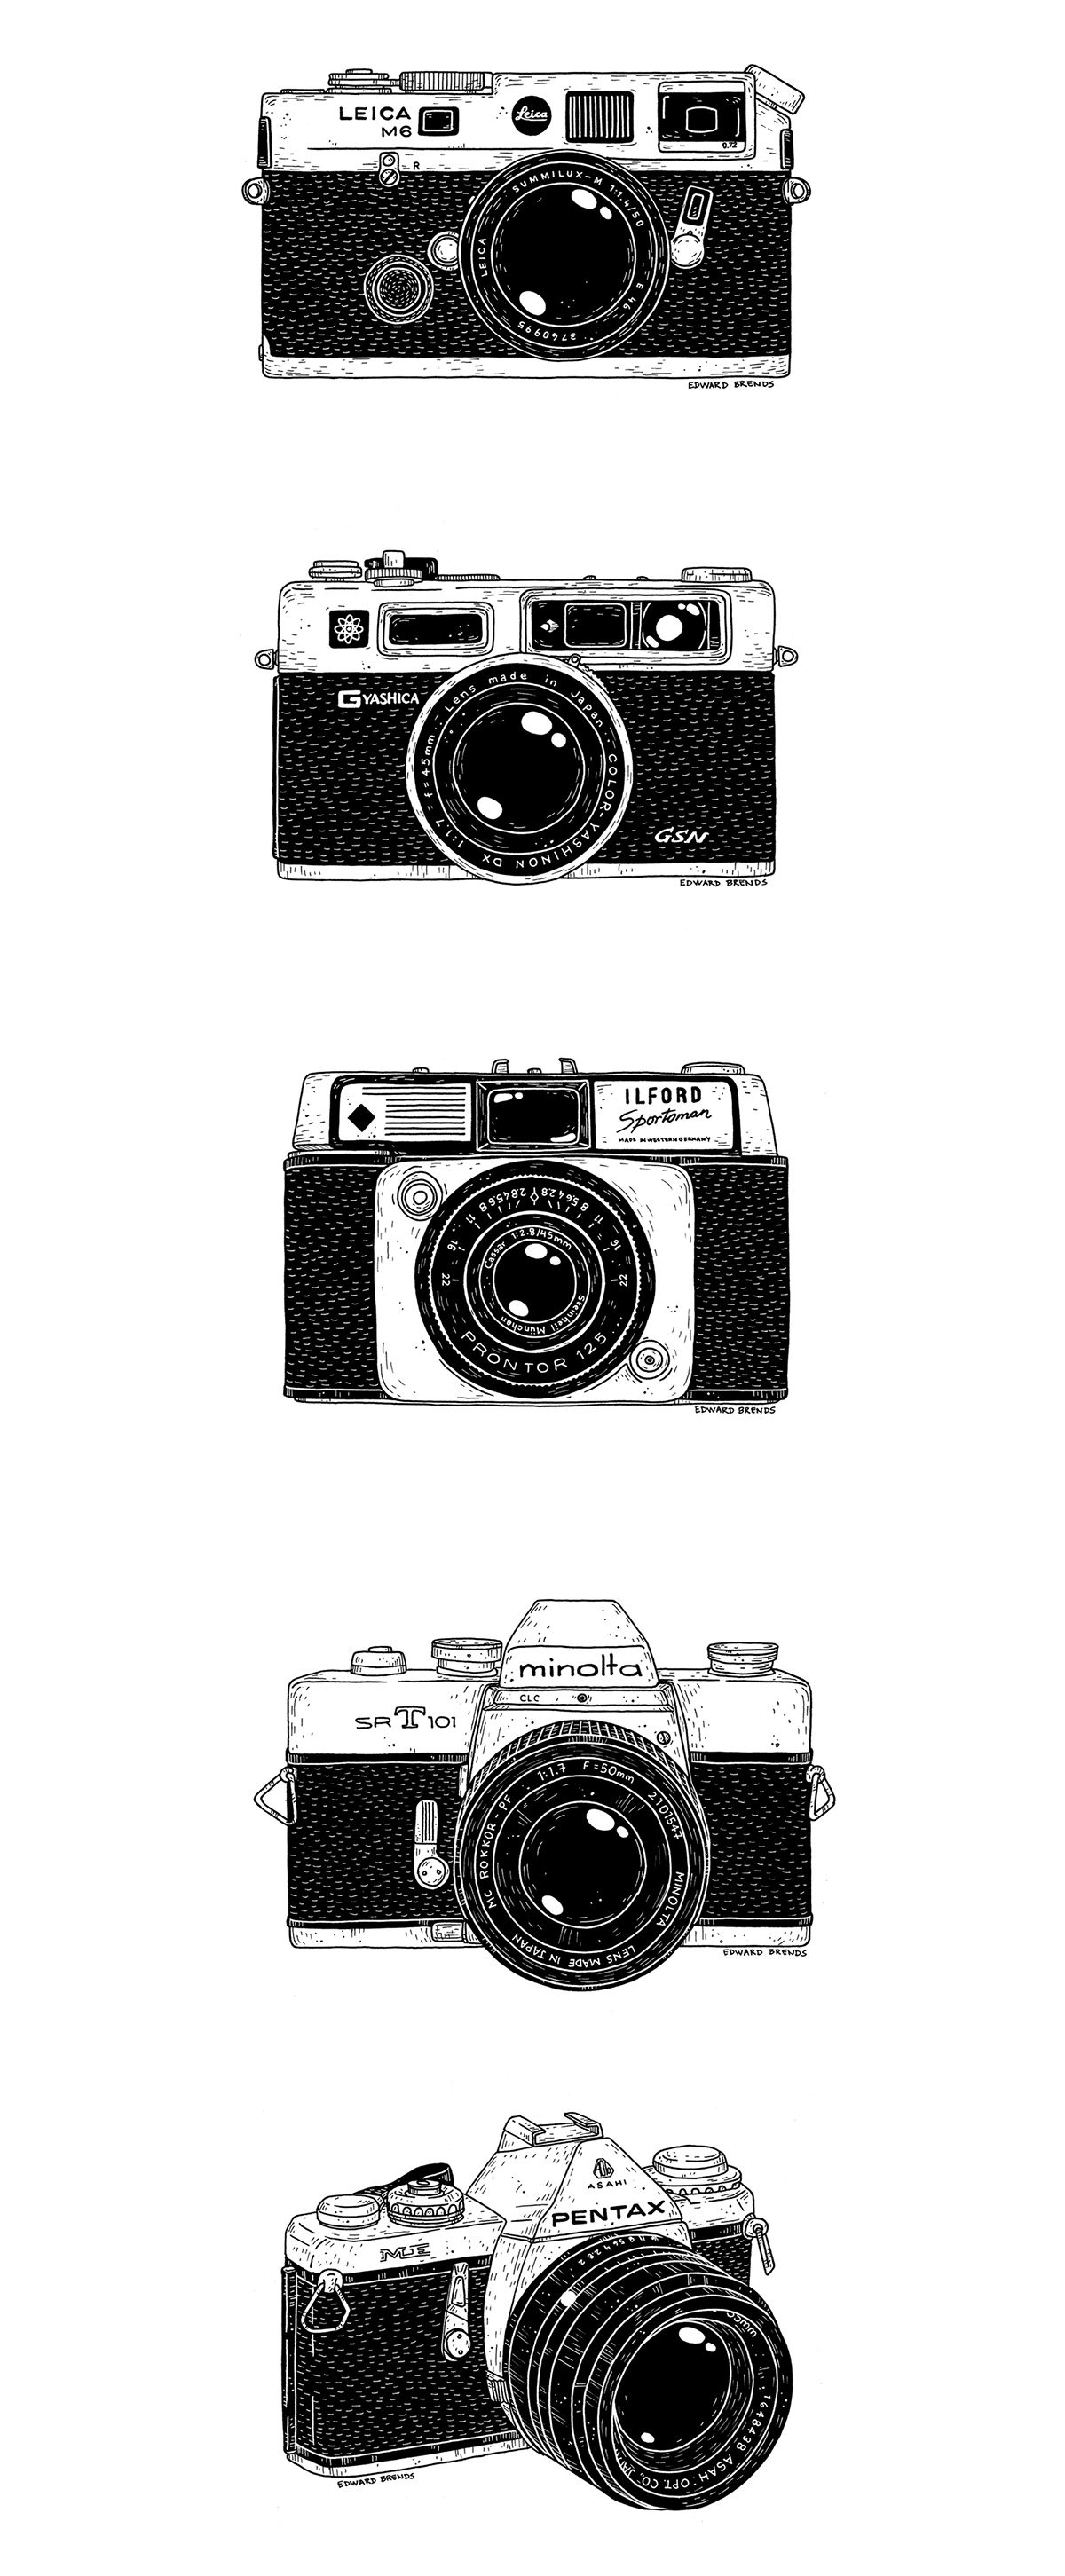 Yearbook clipart canon camera. Vintage cameras on behance